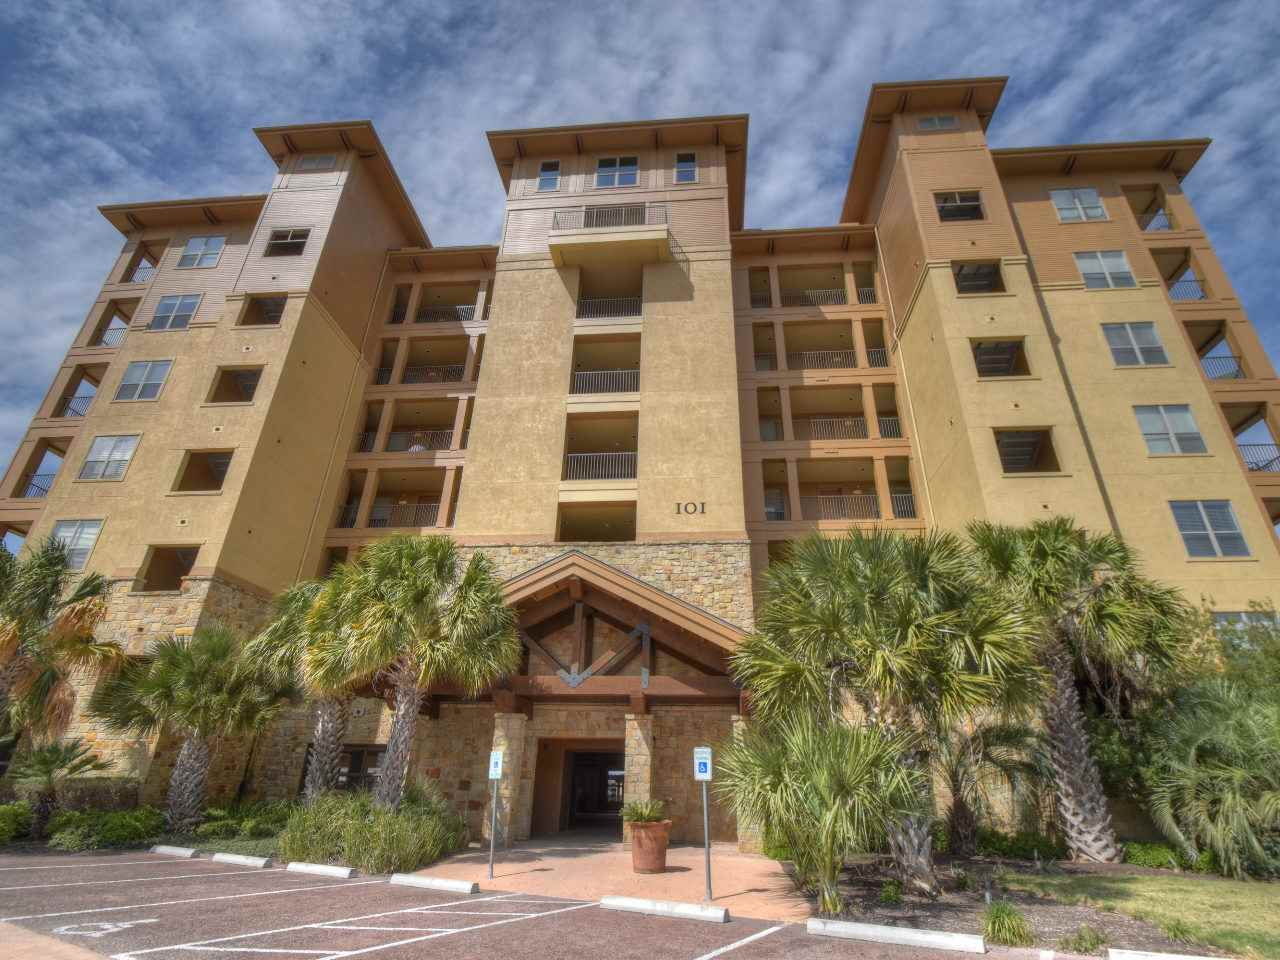 Condominium for Sale at 101 West Bank #23 101 West Bank #23 Horseshoe Bay, Texas 78657 United States